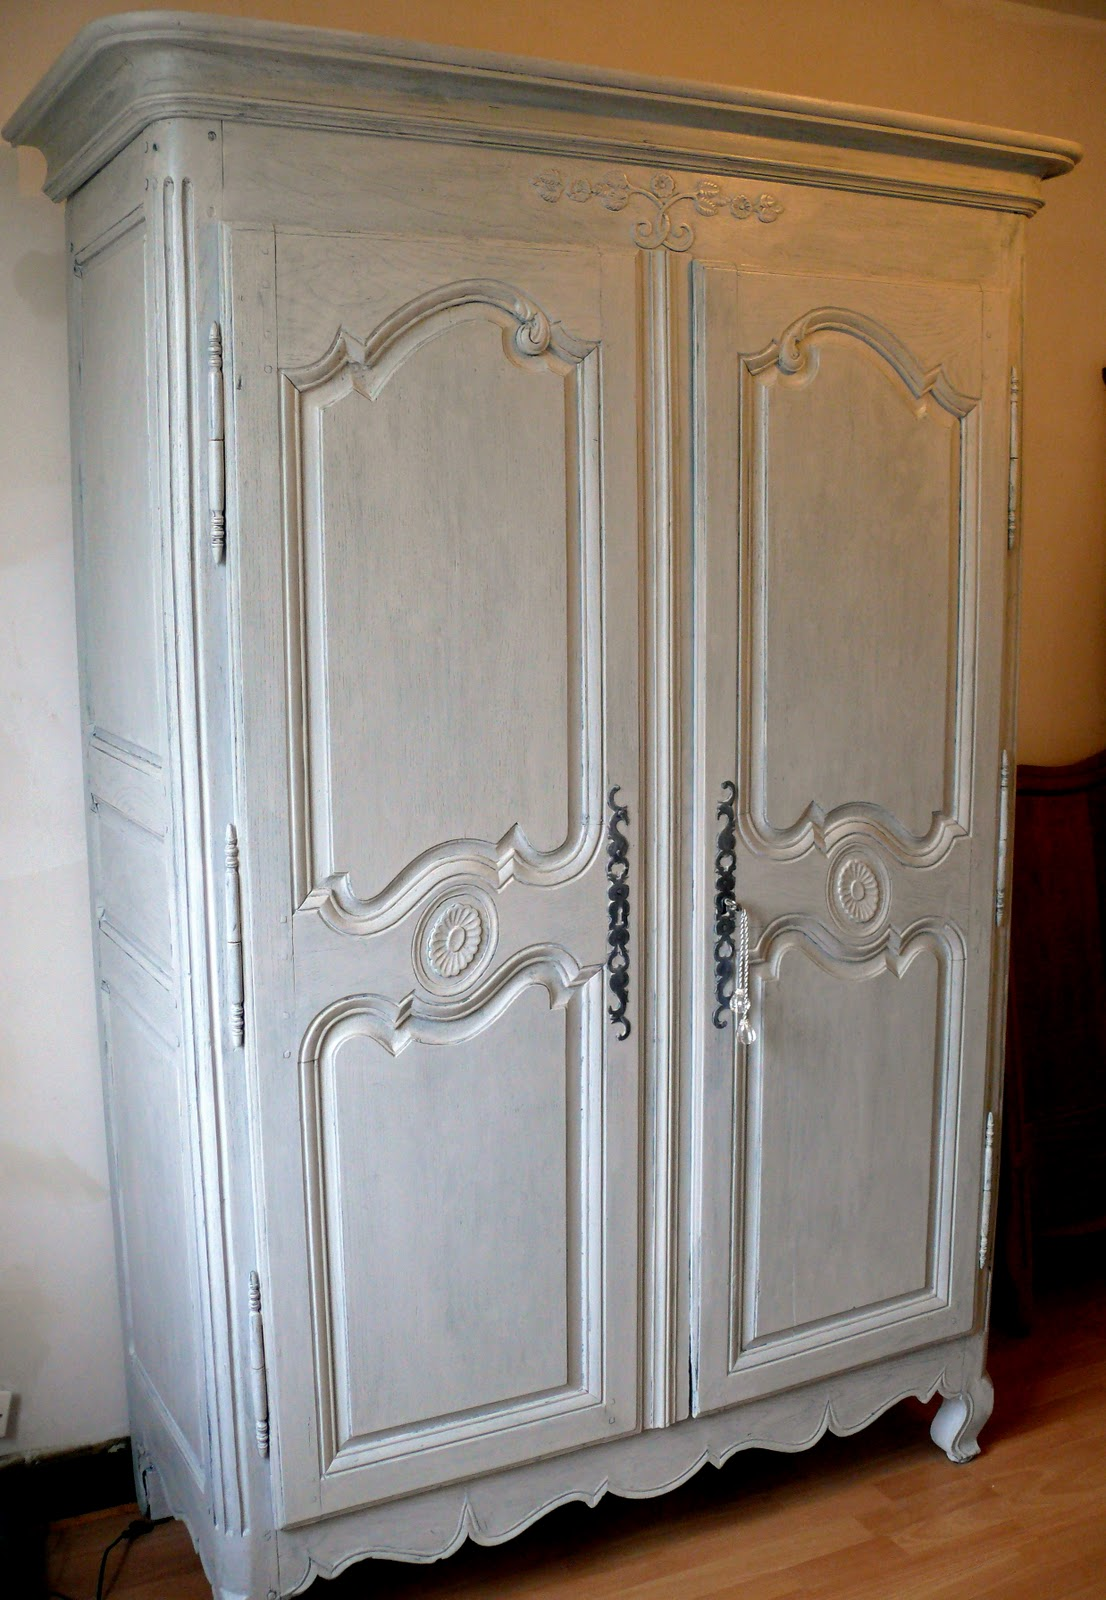 armoire peindre armoire cuisine avant with armoire peindre simple repeindre une armoire en. Black Bedroom Furniture Sets. Home Design Ideas